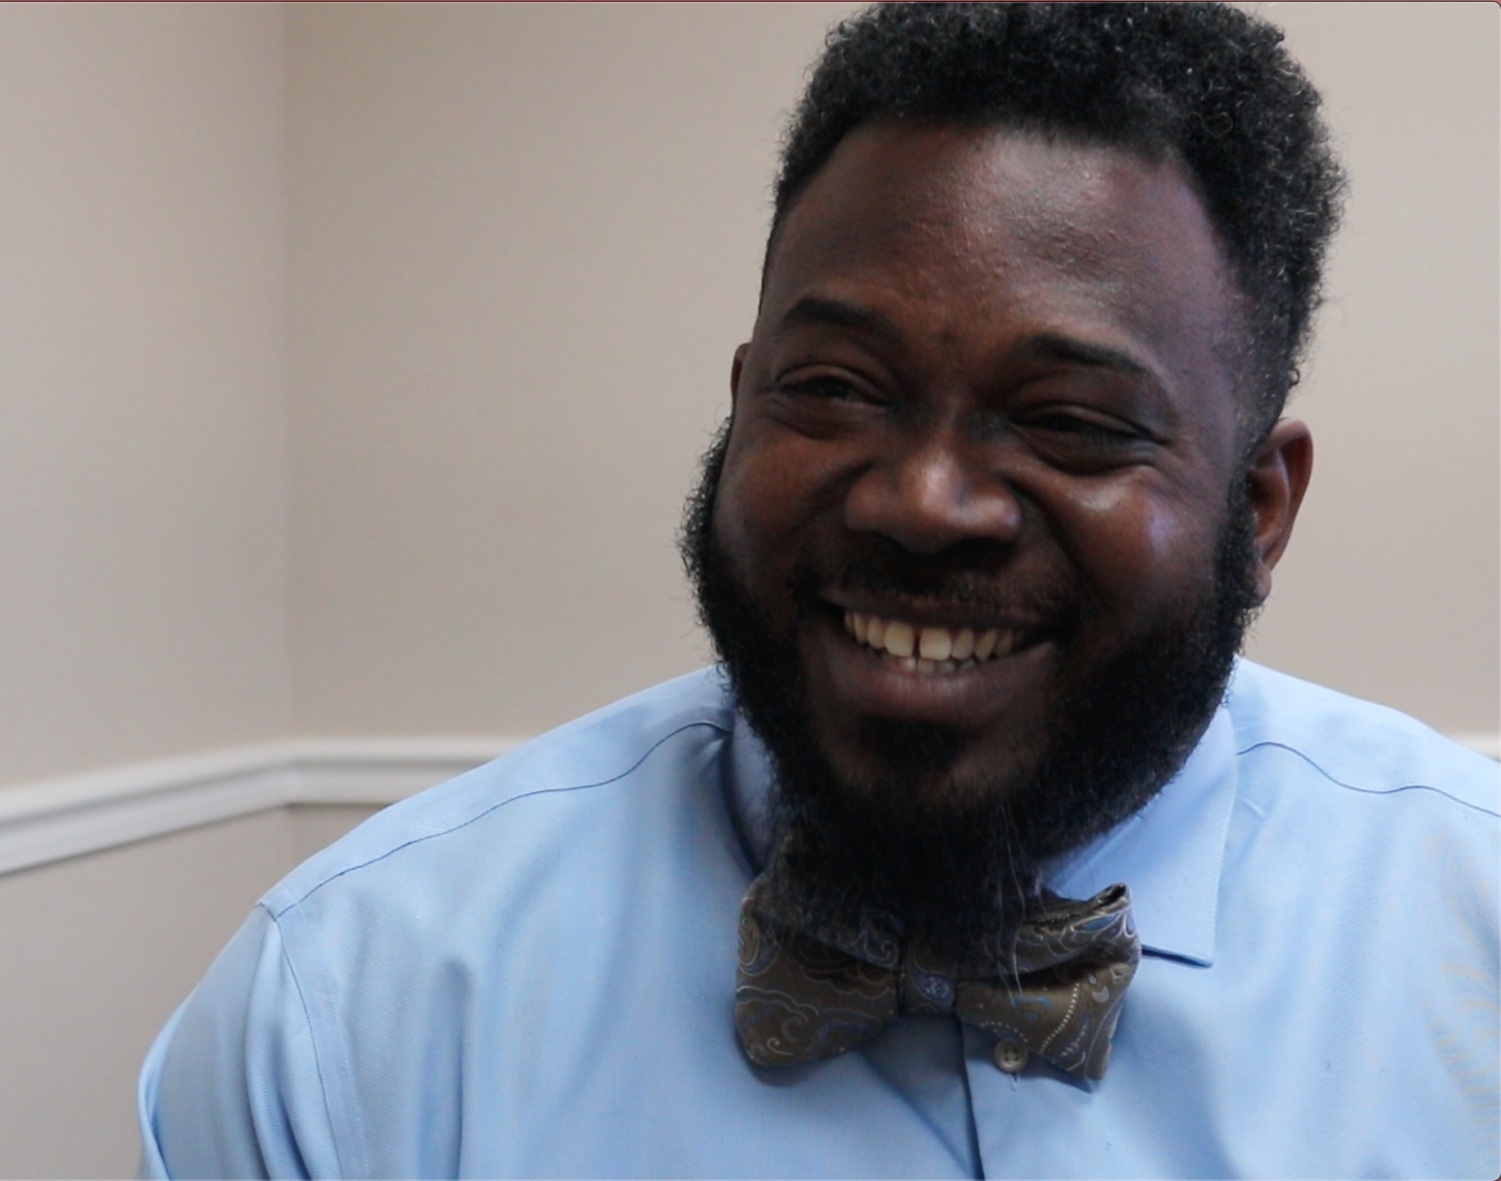 Daniel Charles, a veteran navigator at Mission United, explains what exactly they do at Mission United in regards to helping veterans get back on their feet and return to civilian life.